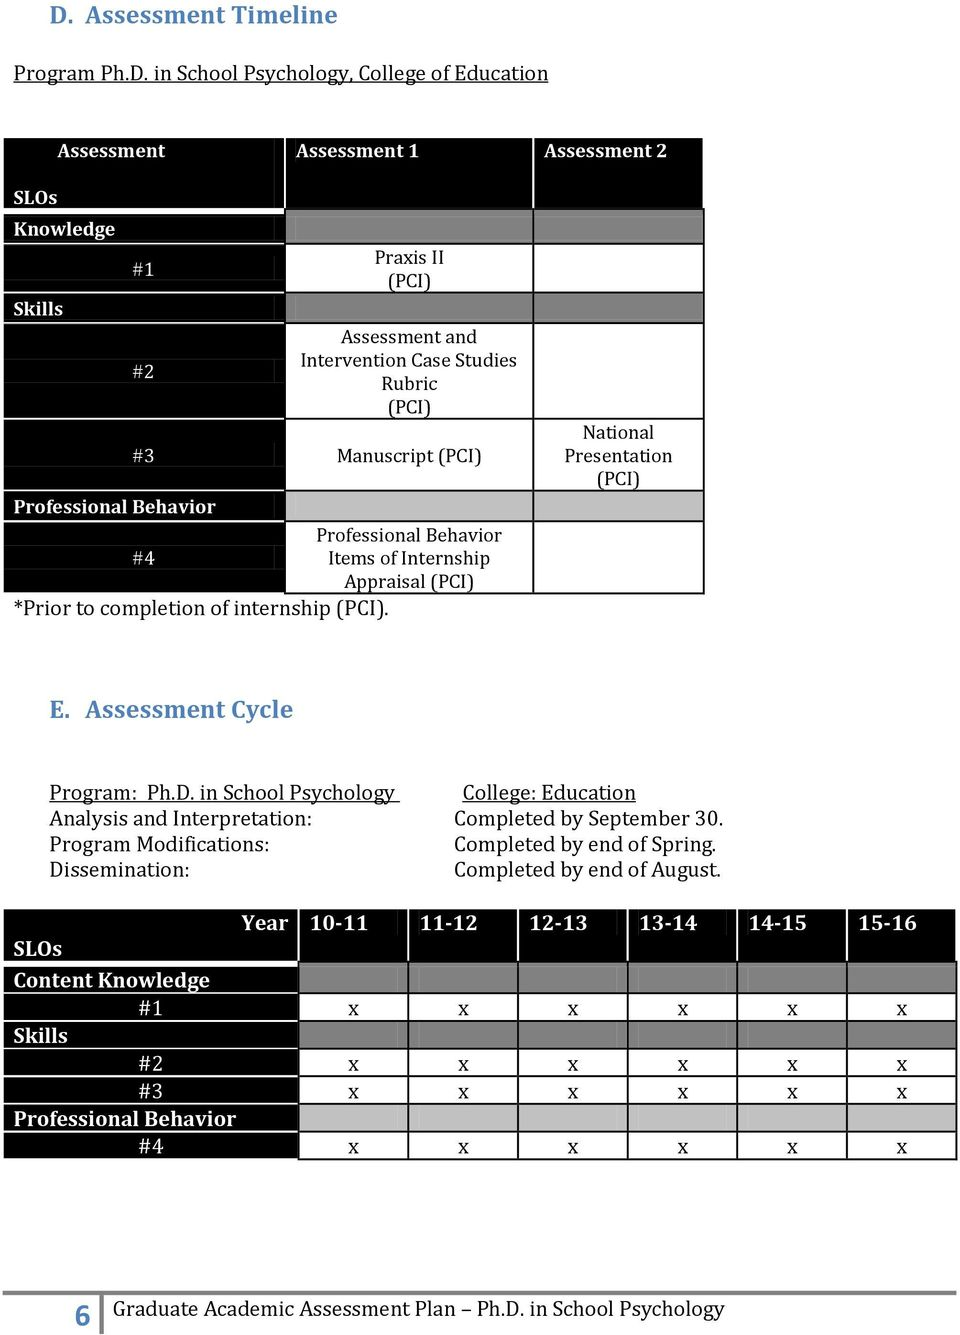 National Presentation (PCI) E. Assessment Cycle Program: Ph.D. in School Psychology College: Education Analysis and Interpretation: Completed by September 30.